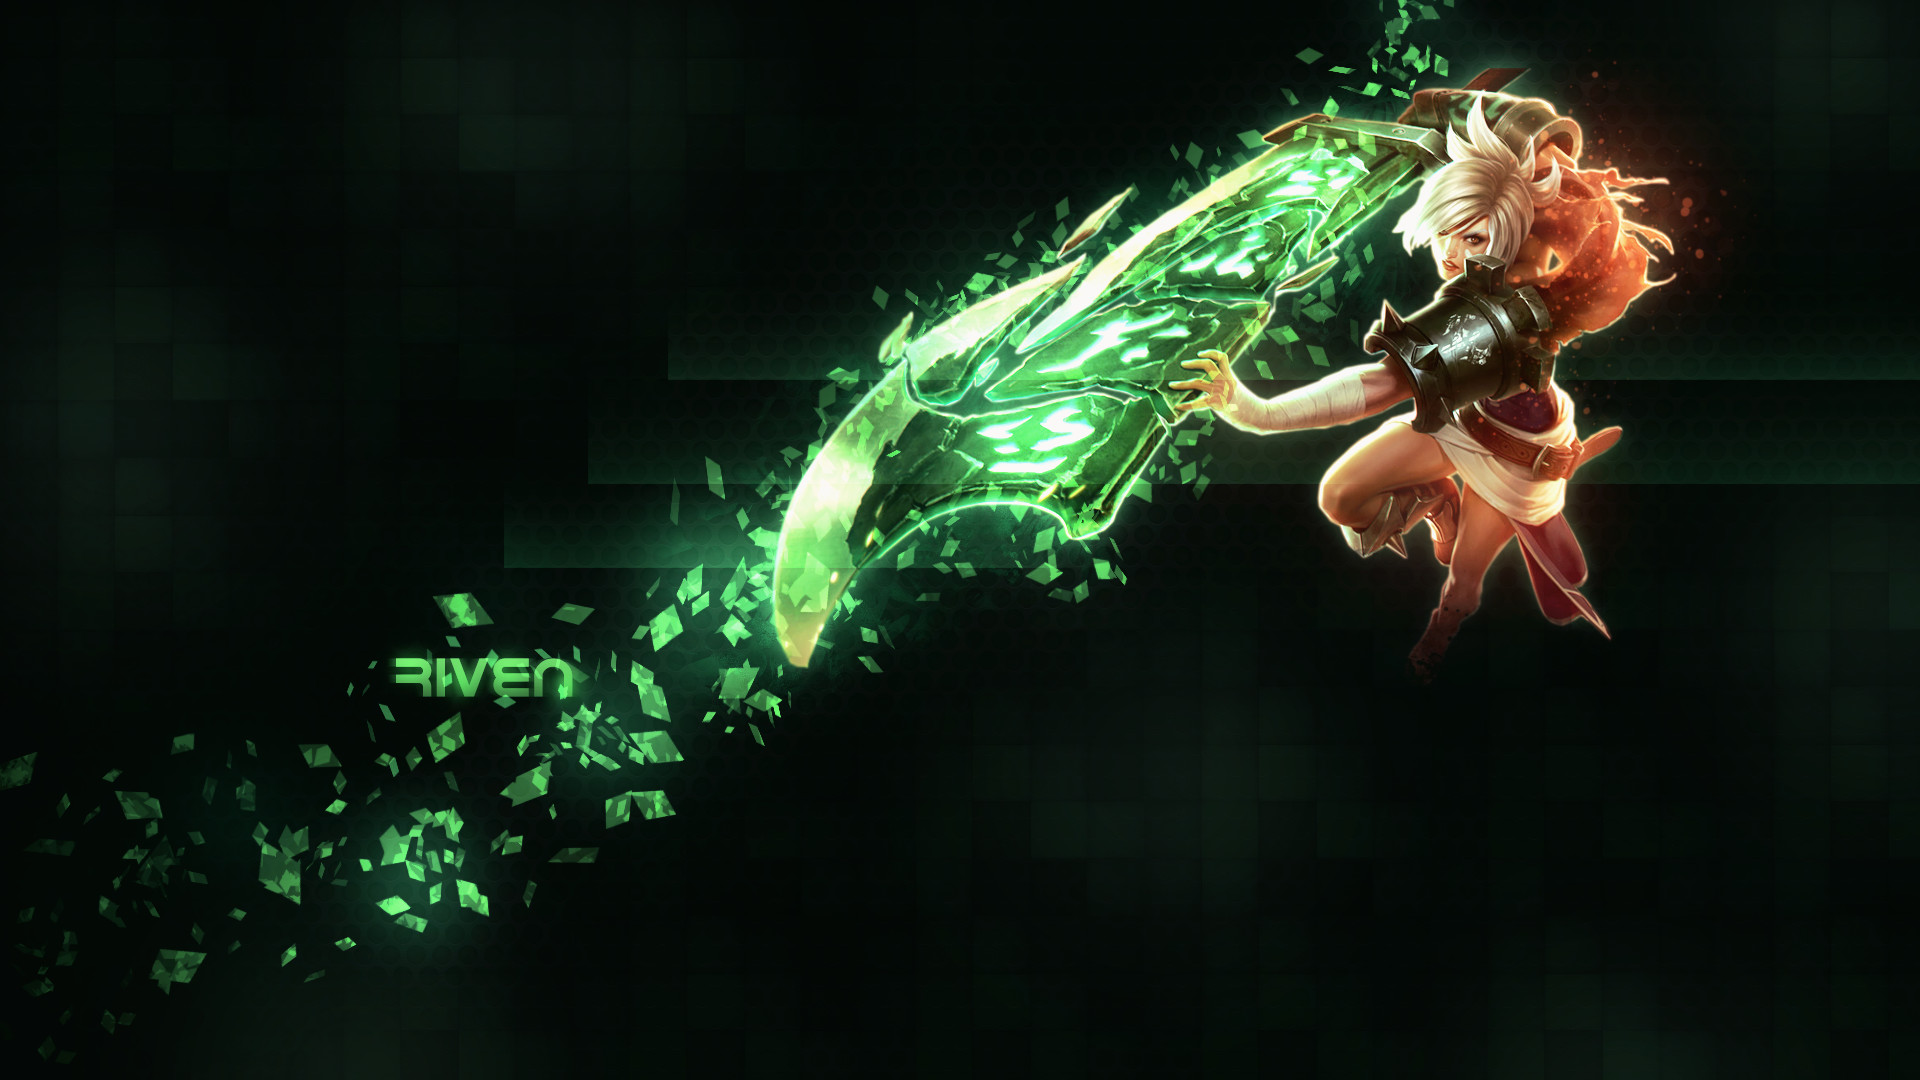 Championship Riven Wallpapers Hd Wallpaper Collections